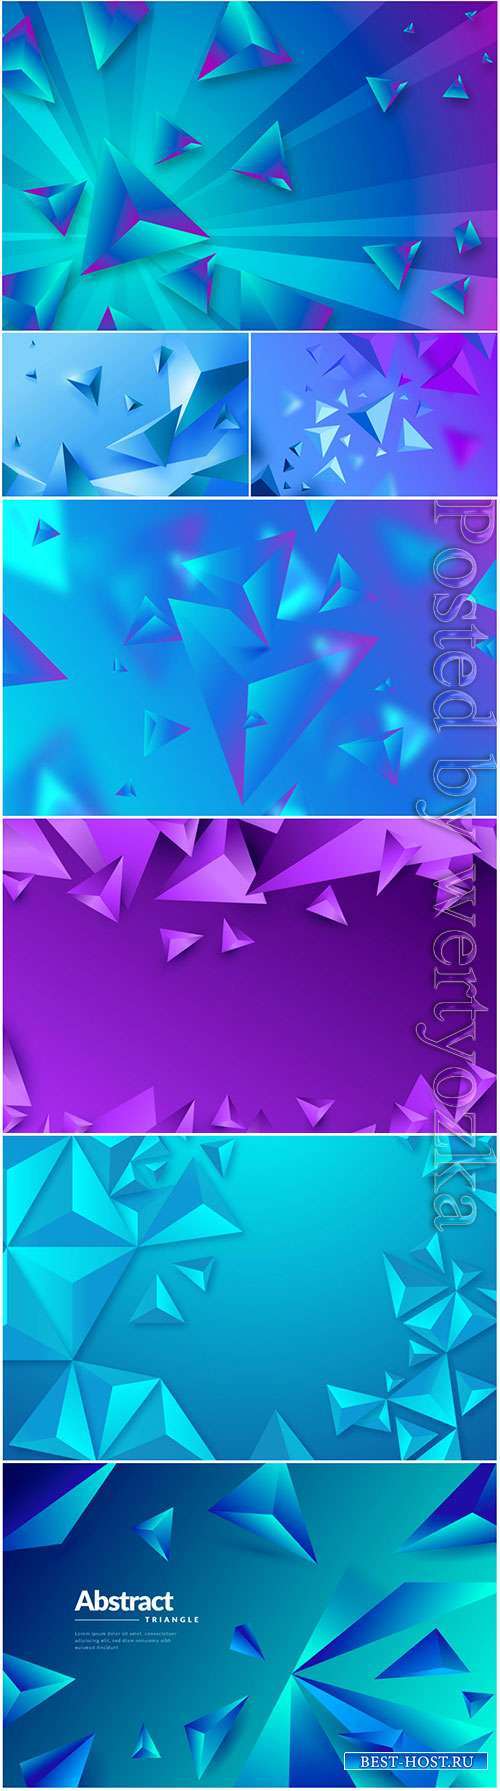 3d vector background with blue and lilac abstract elements